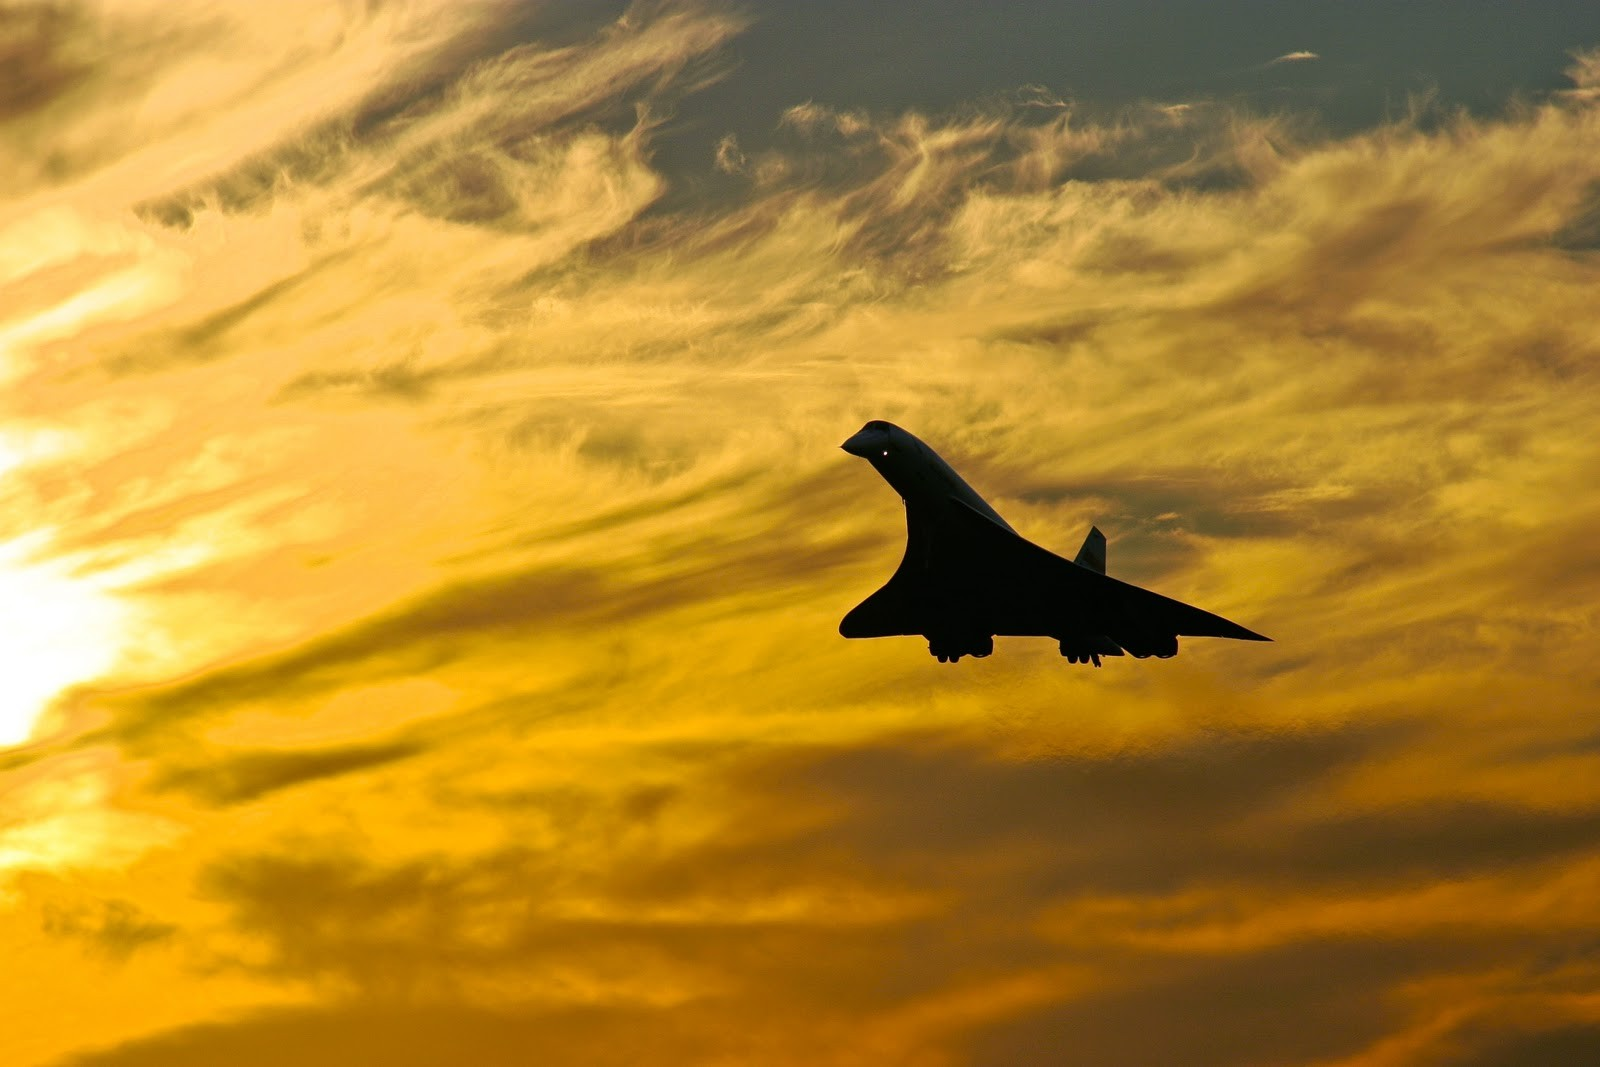 silhouette sunlight clouds concorde aircraft jets flying photography sky